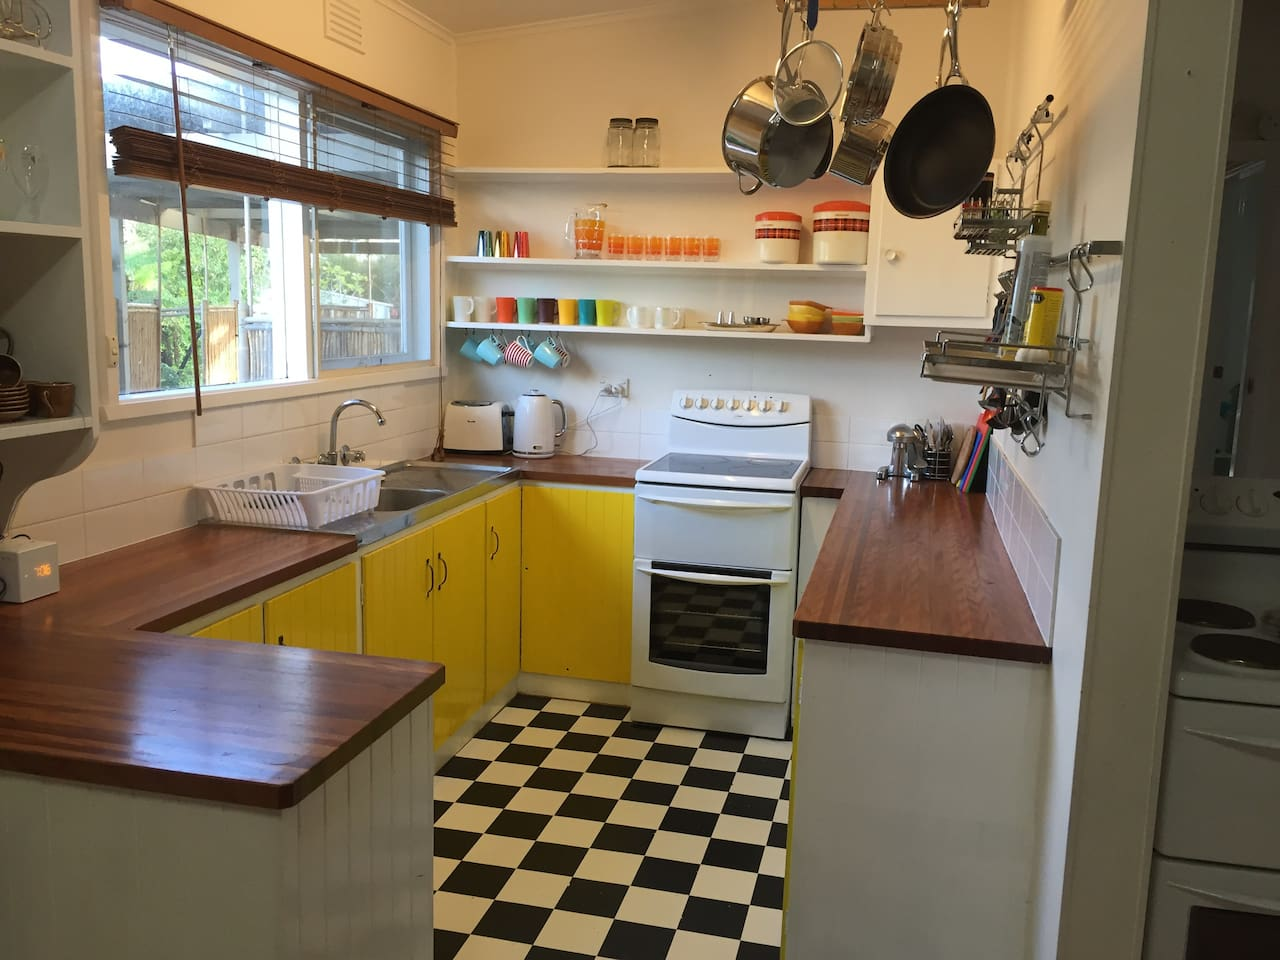 kitchen is bright and well-equipped